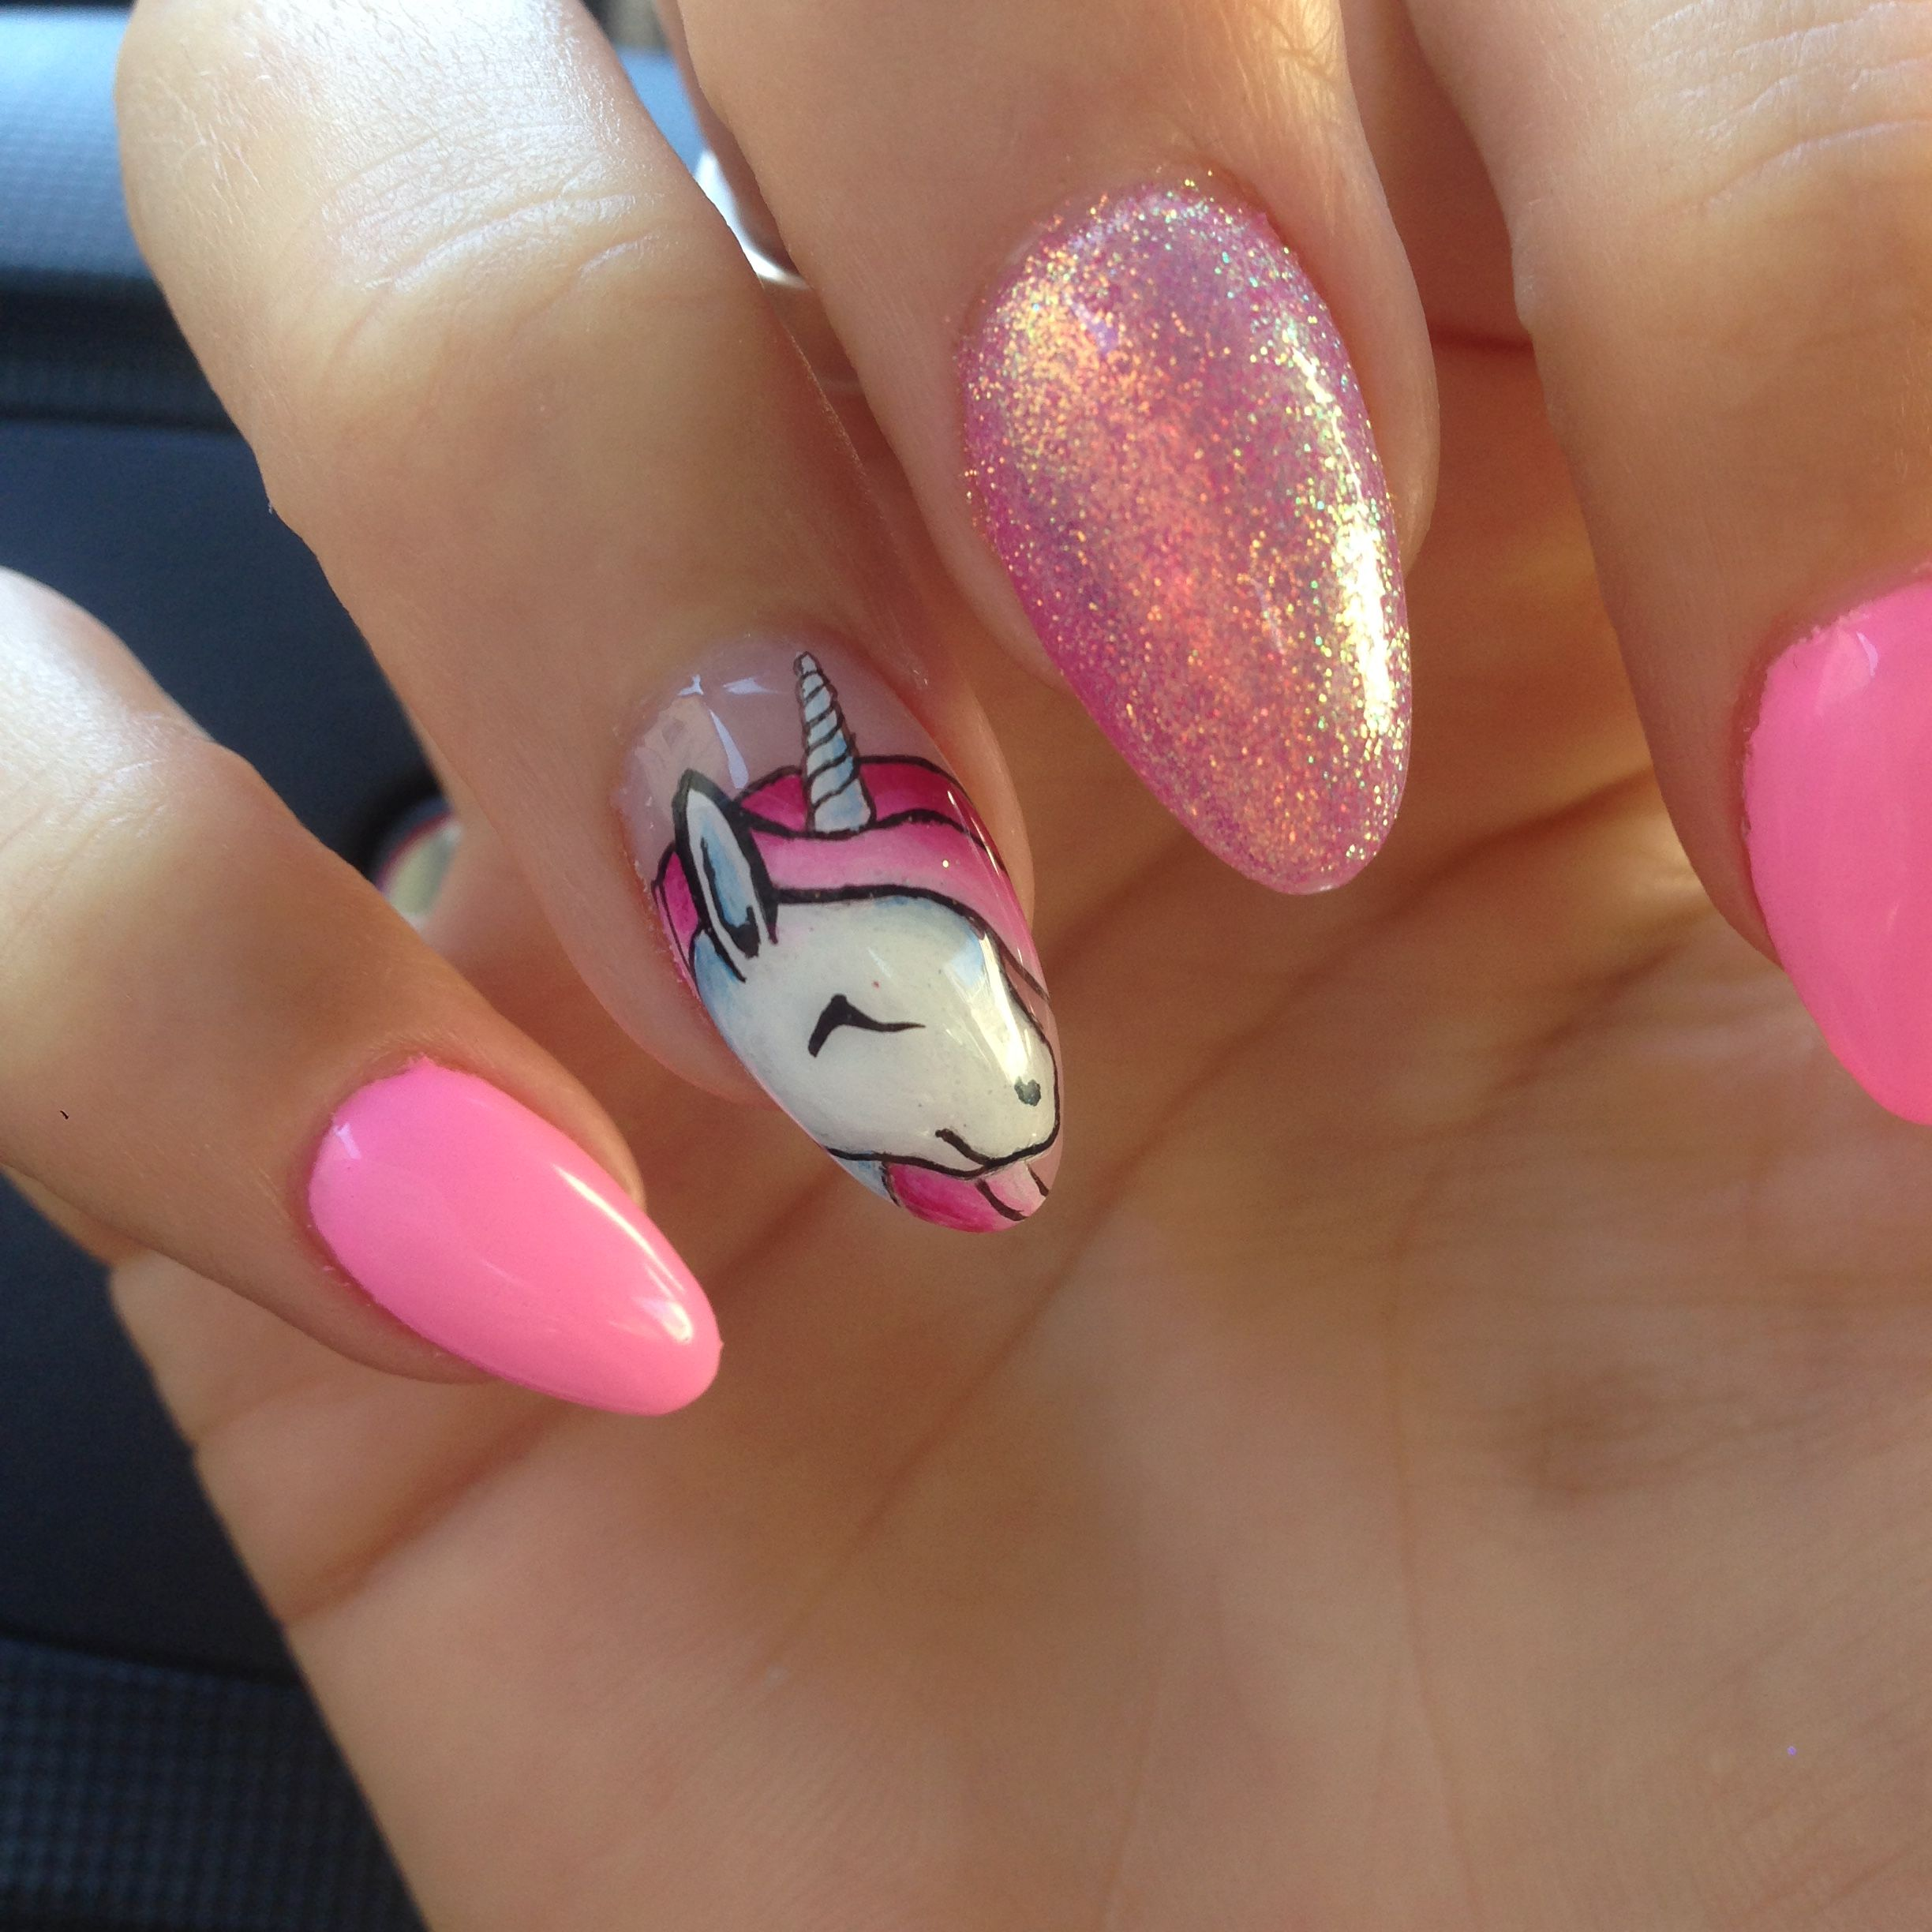 Ongle licorne rose à Paillette ! nails pink so girly